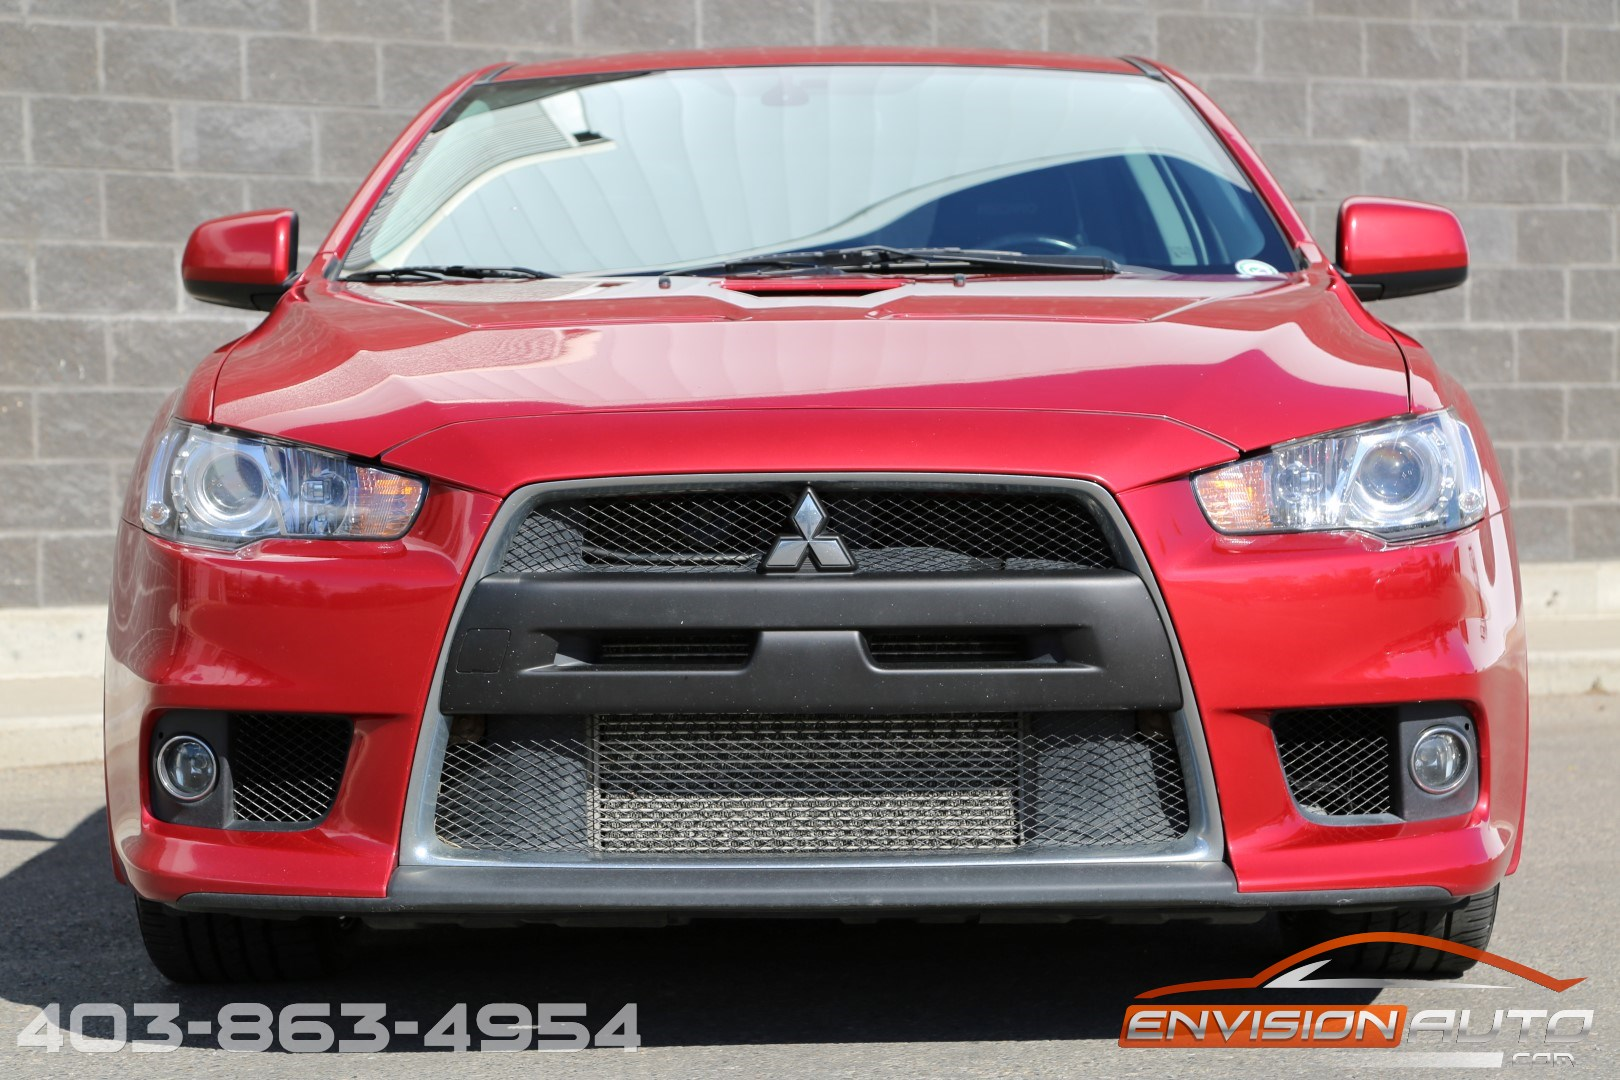 2011 mitsubishi lancer evo x mr recaro seats bbs. Black Bedroom Furniture Sets. Home Design Ideas